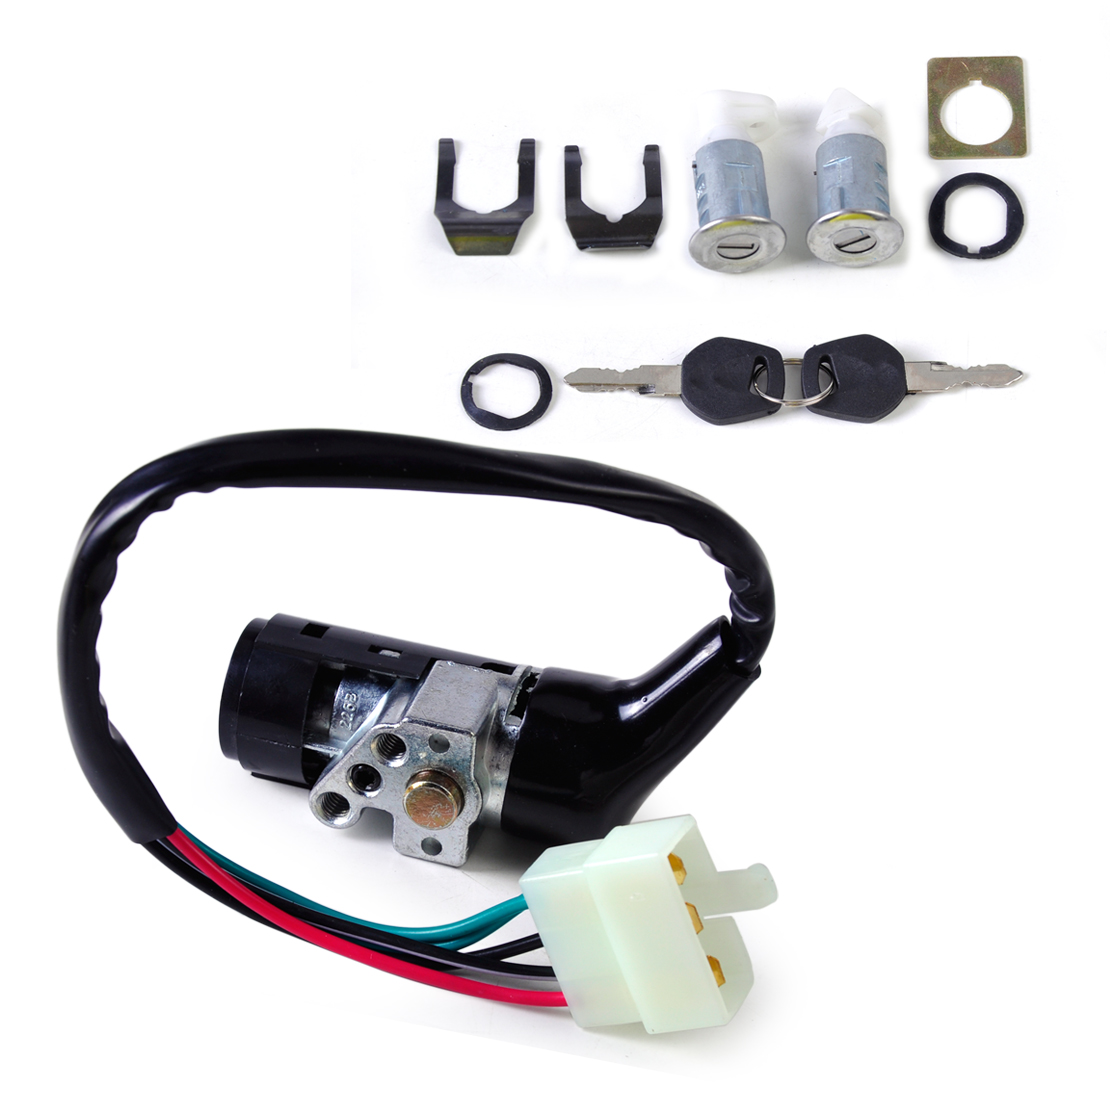 Buy moped ignition switch and get free shipping on AliExpress.com